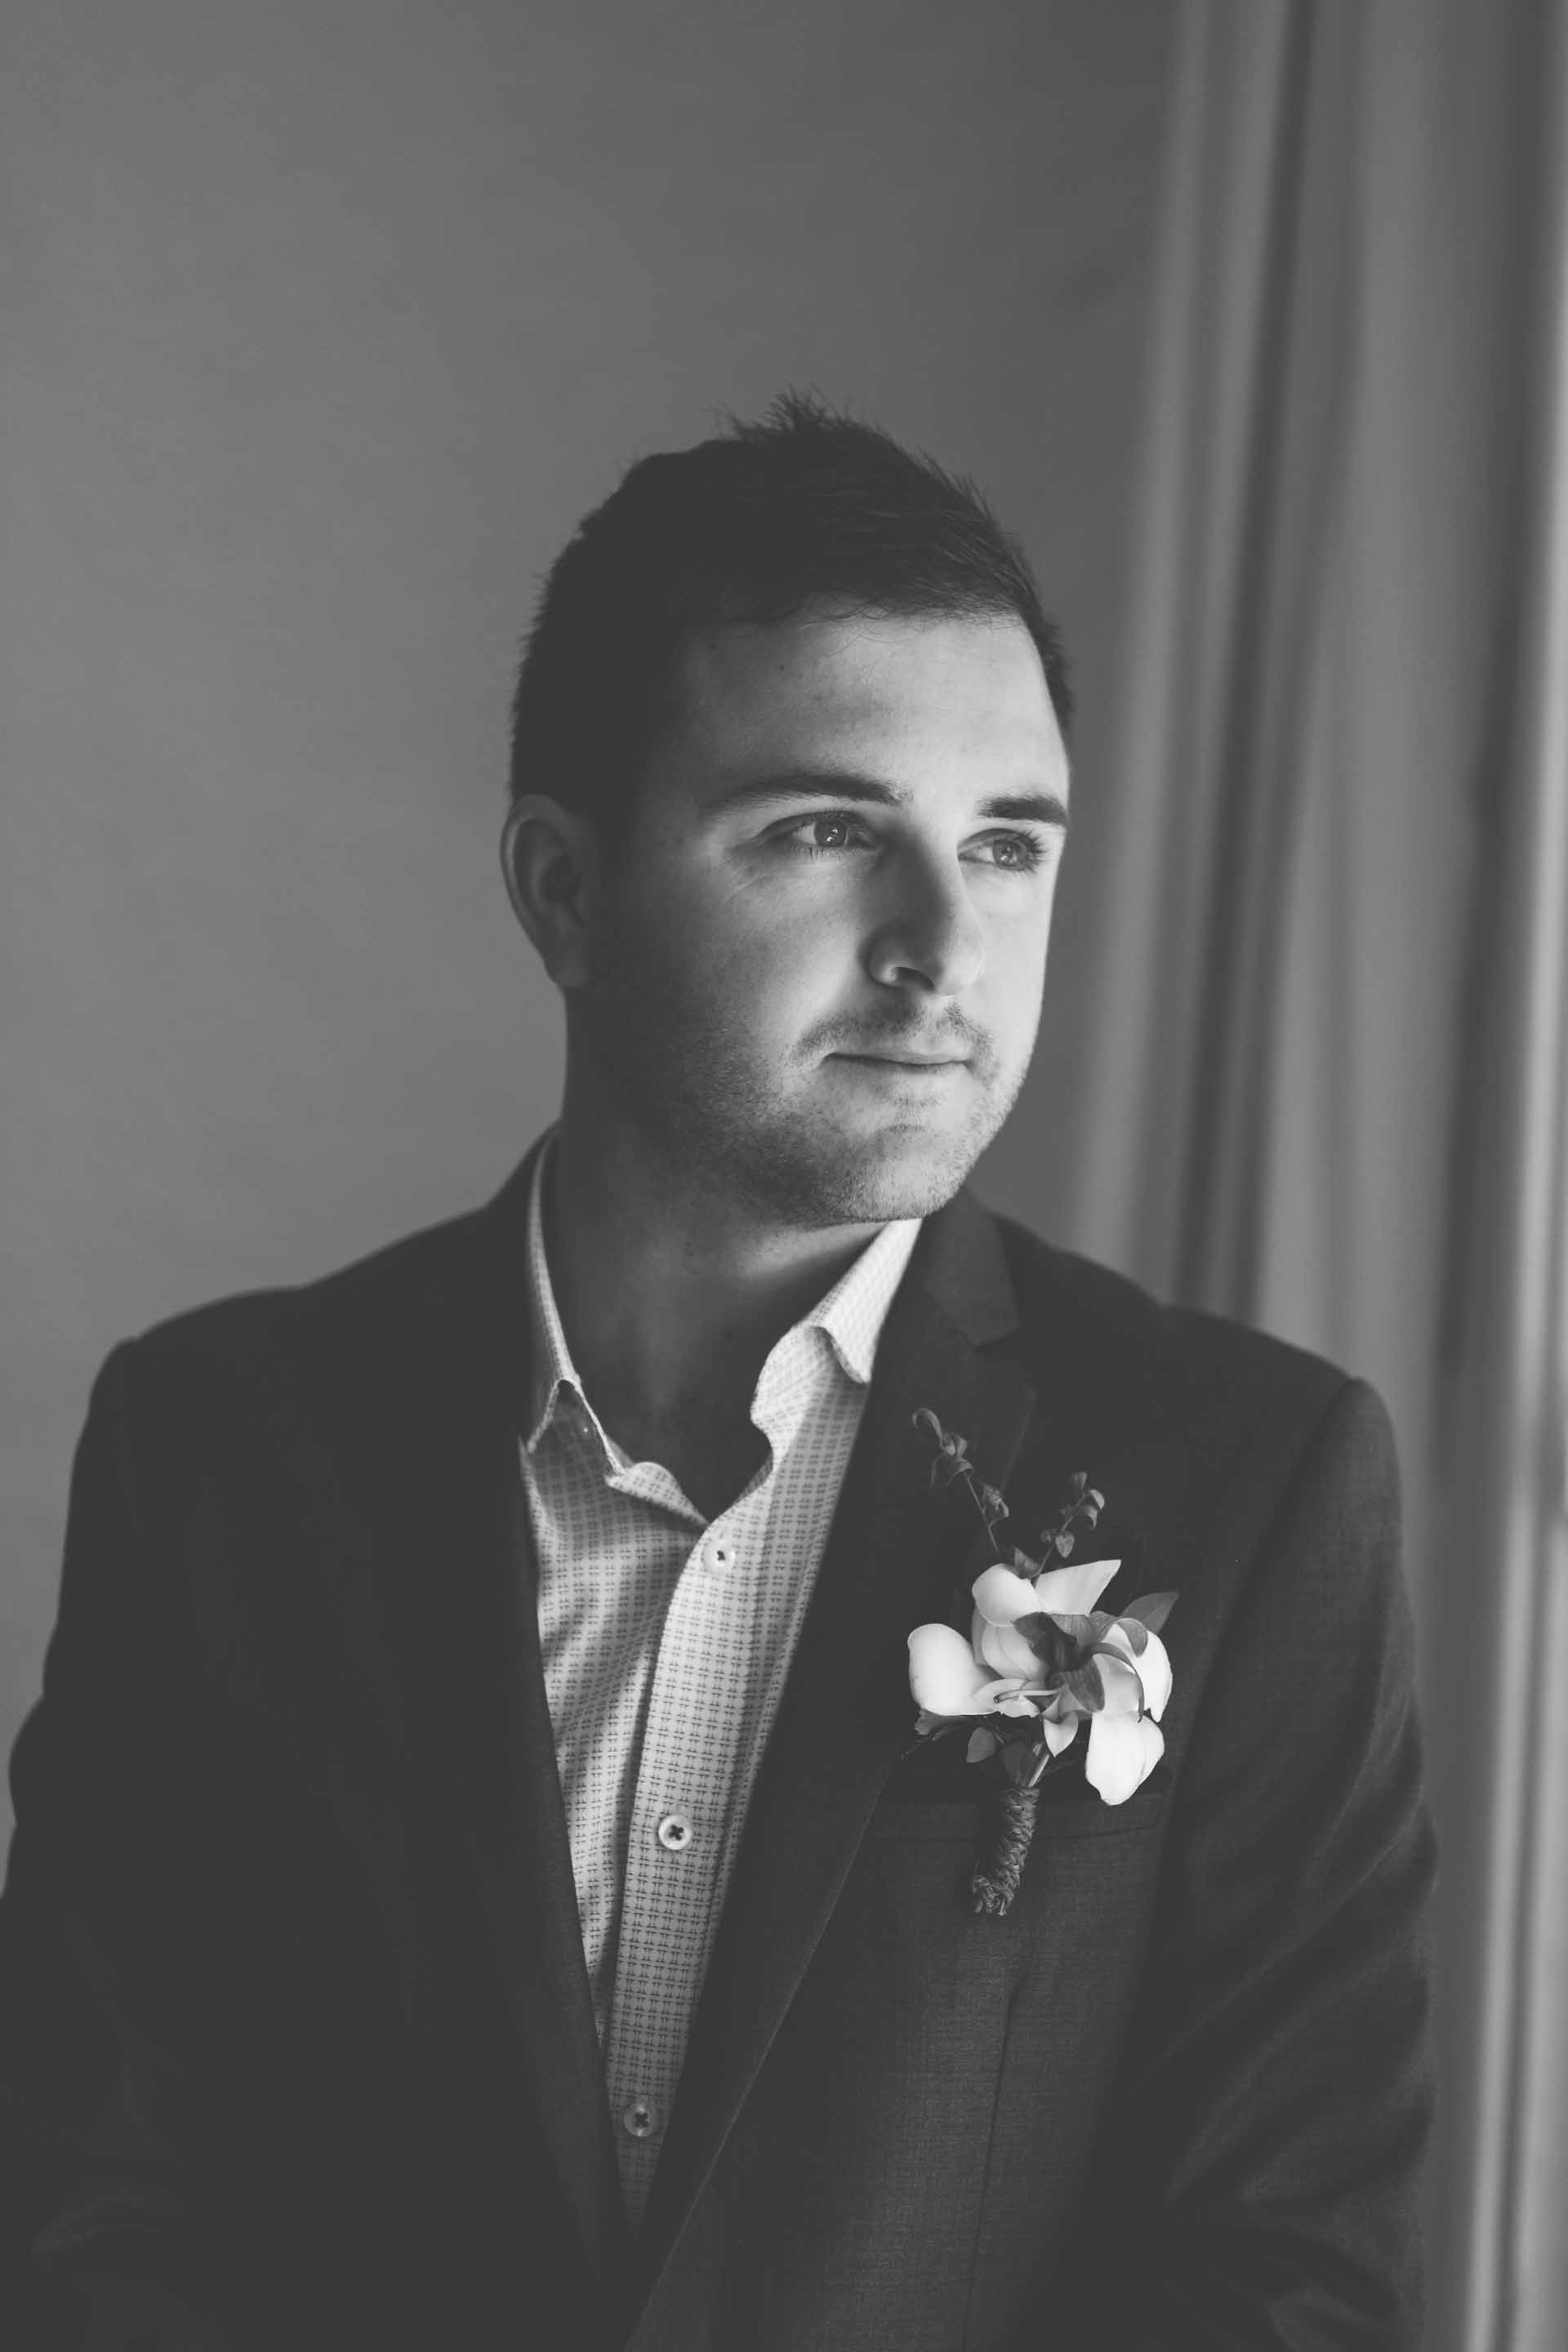 a black and white portrait of the groom looking out the window wearing his wedding suite with boutonnière